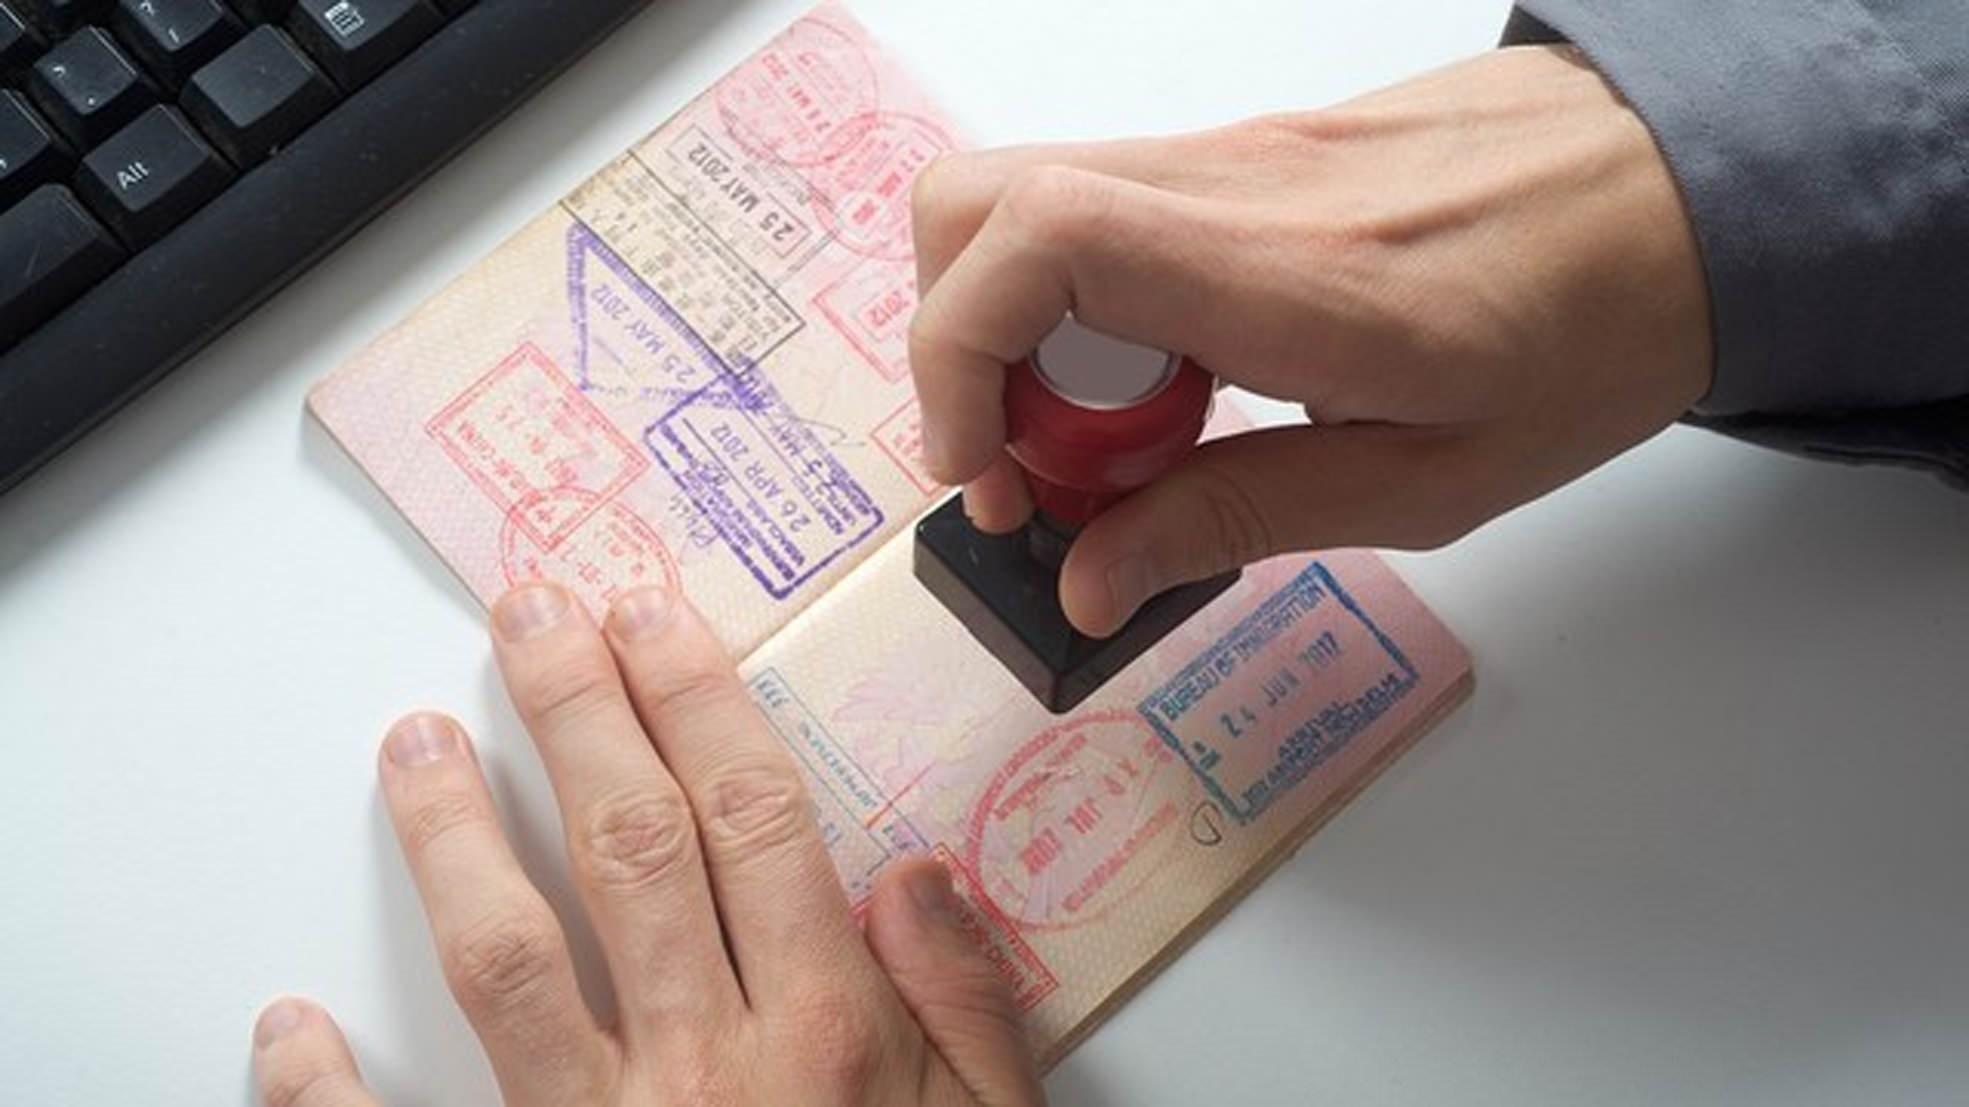 The current short-term visitor Schengen visa allows Turkish citizens up to a six-month duration, with a maximum of 180 days each calendar year, or two 90-day stays per 180-day period.